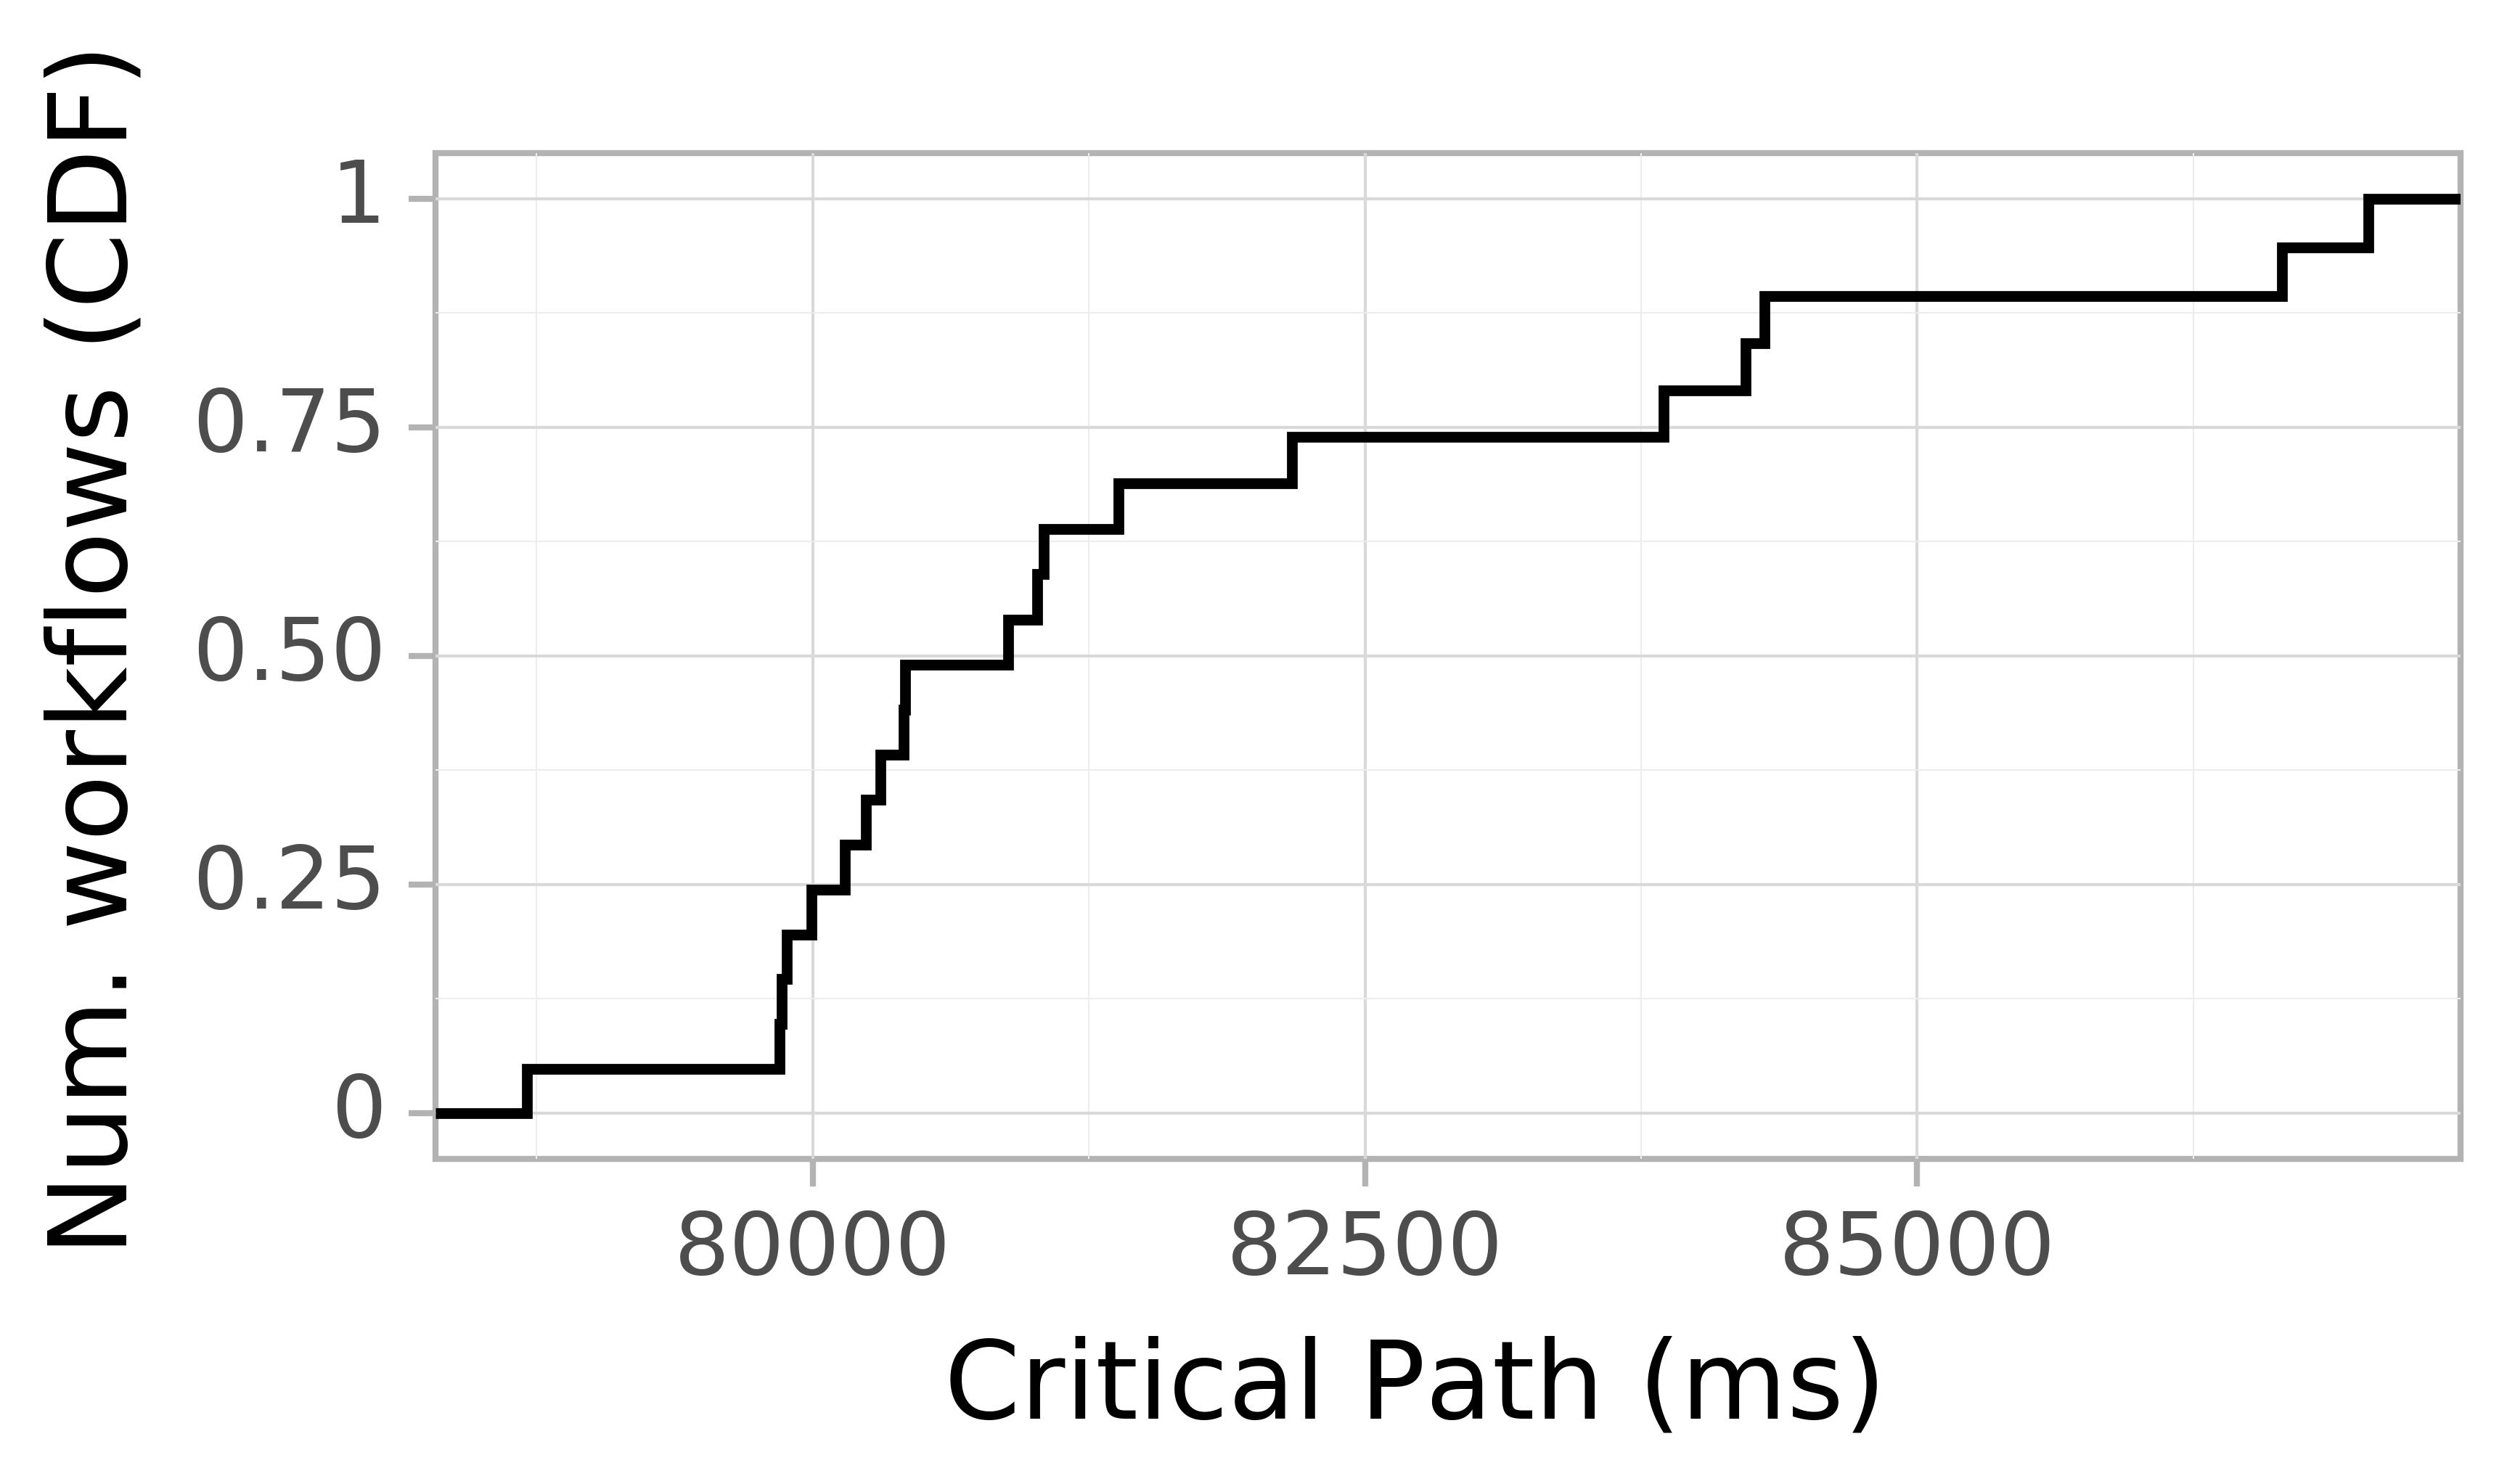 Job runtime CDF graph for the askalon-new_ee11 trace.